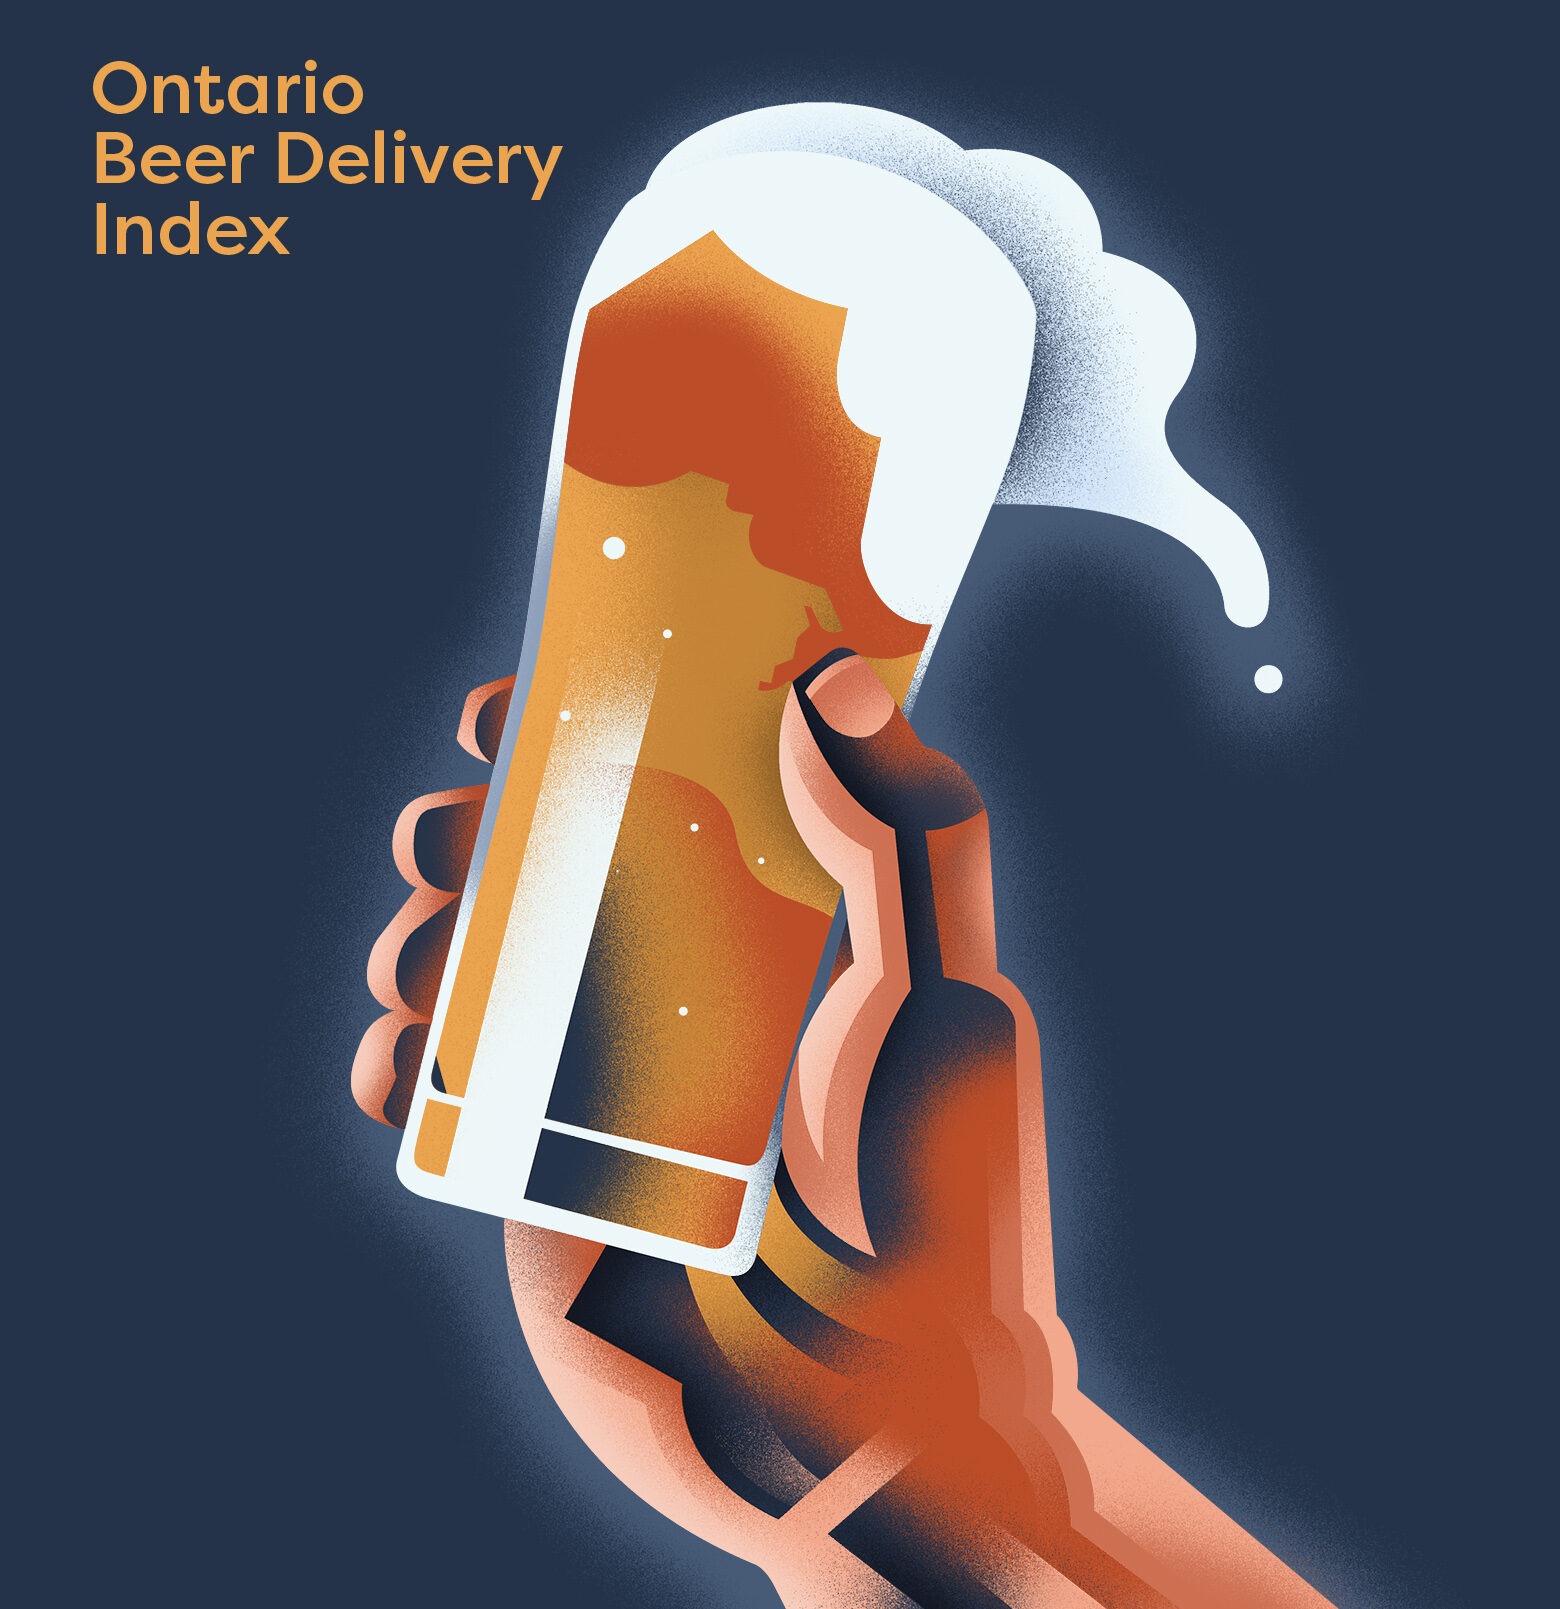 Ontario Beer Delivery Index_Illustration by Dave Murray